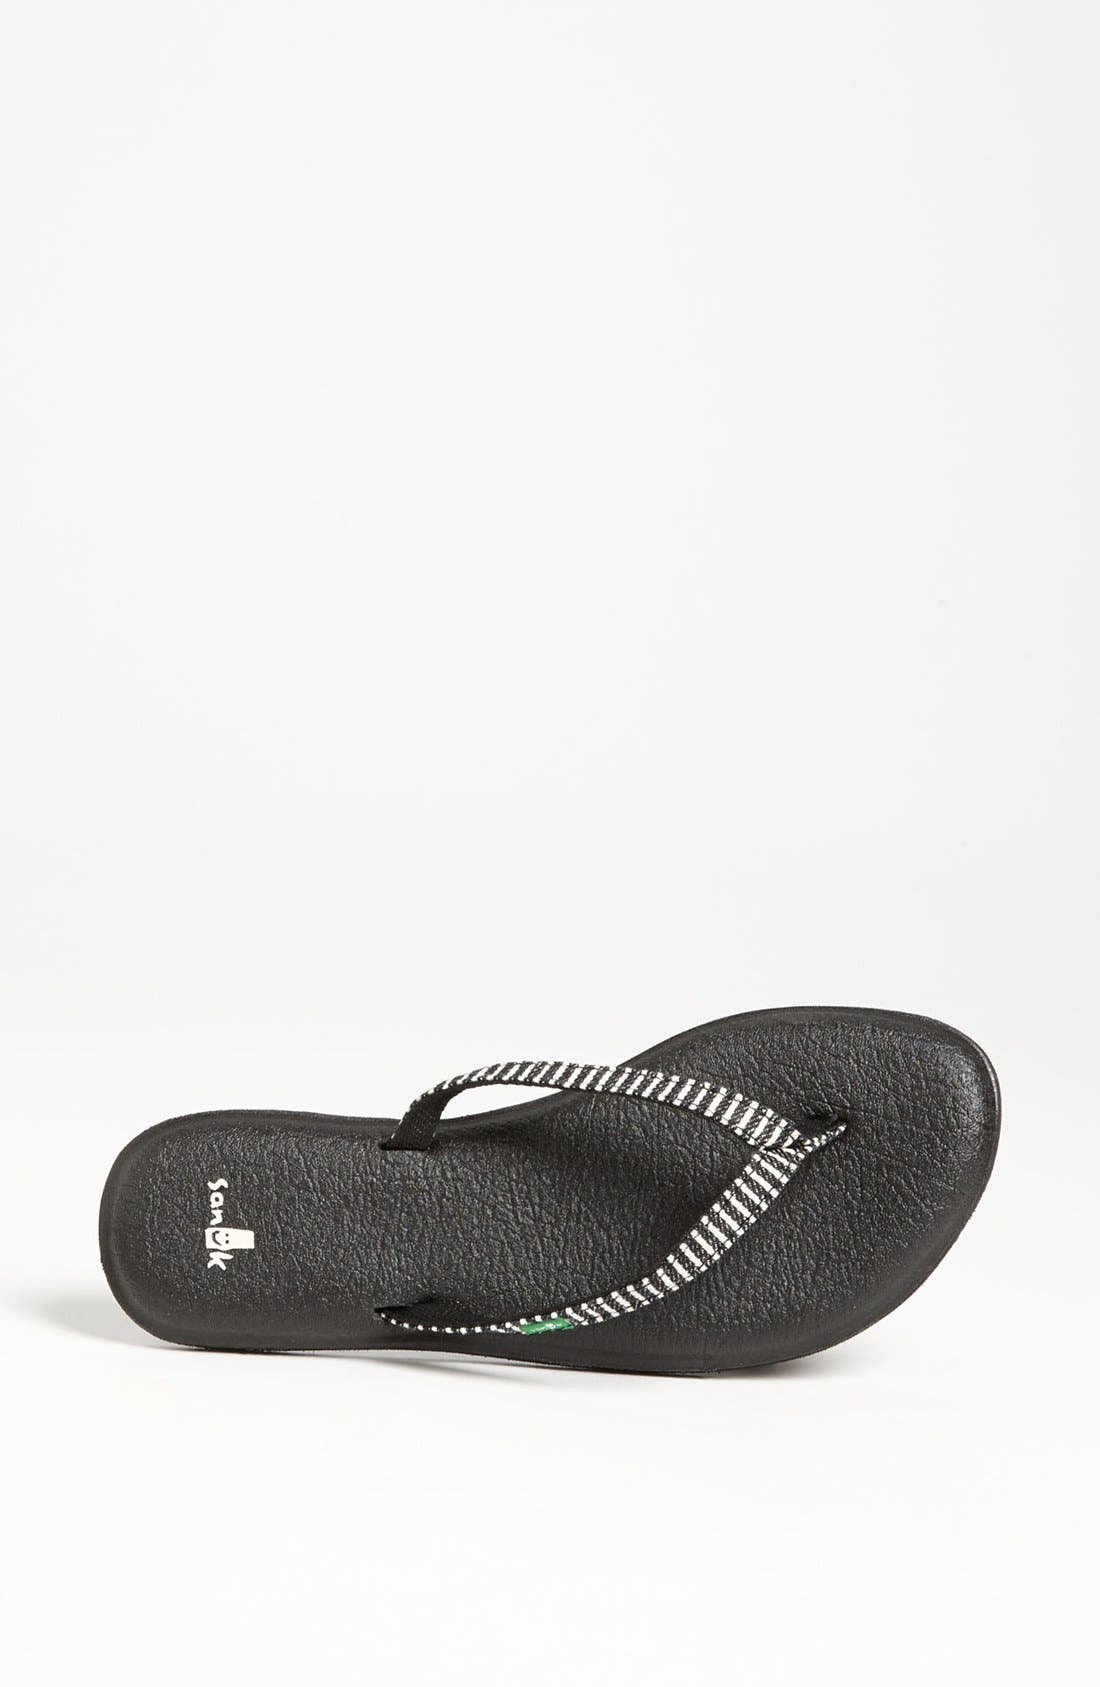 Alternate Image 3  - Sanuk 'Yoga Spree Funk' Flip Flop (Women)